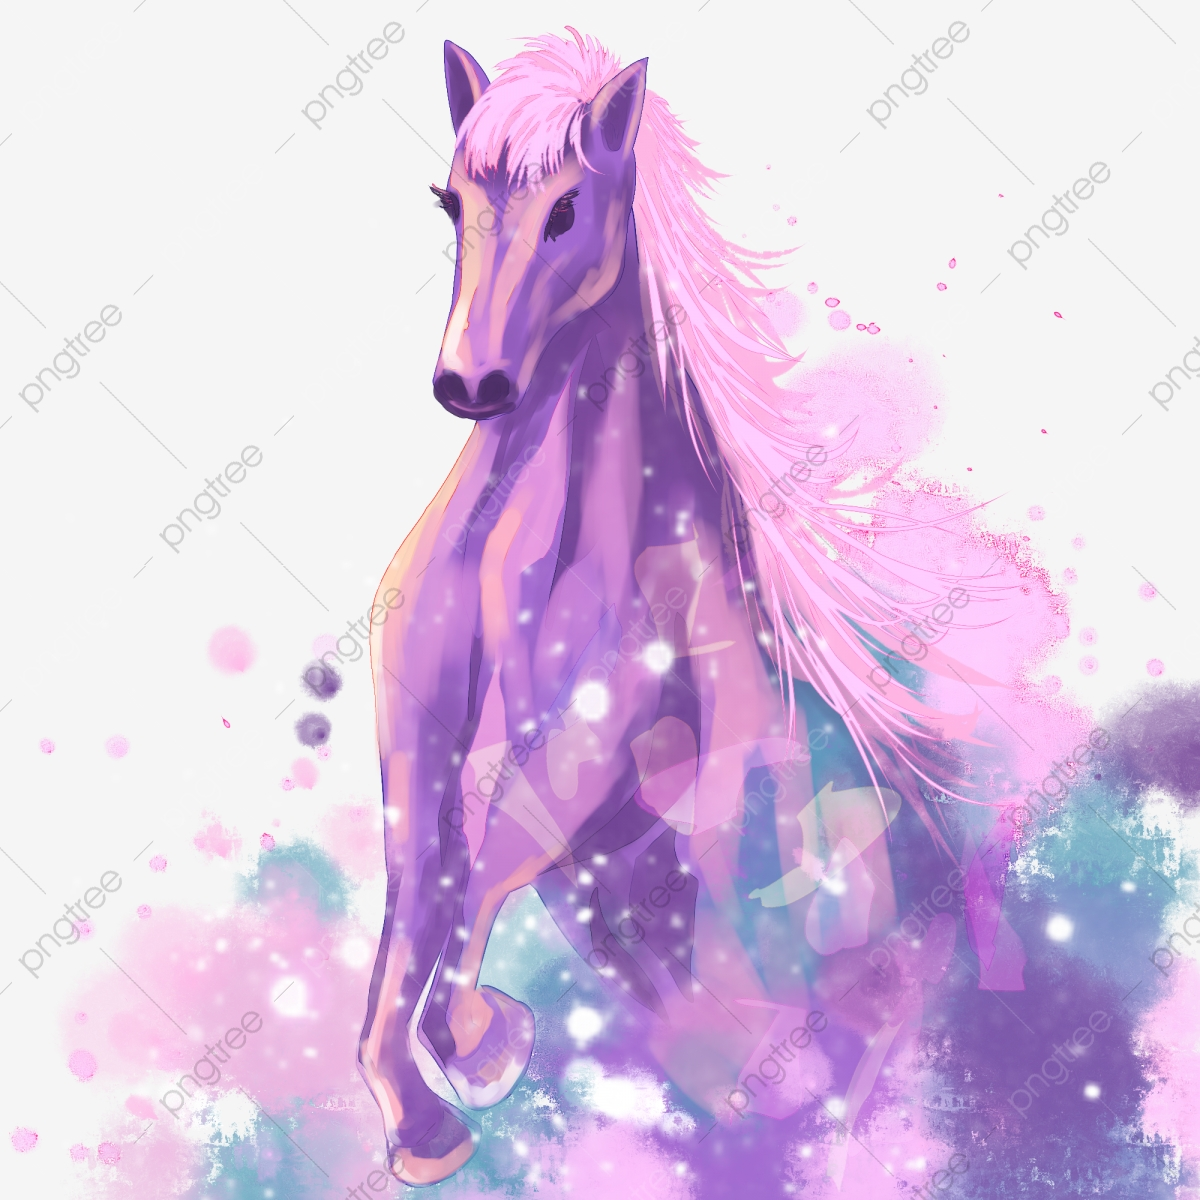 Beautiful Watercolor Running Horse Beautiful Watercolor Ink Running Horse Png Transparent Clipart Image And Psd File For Free Download